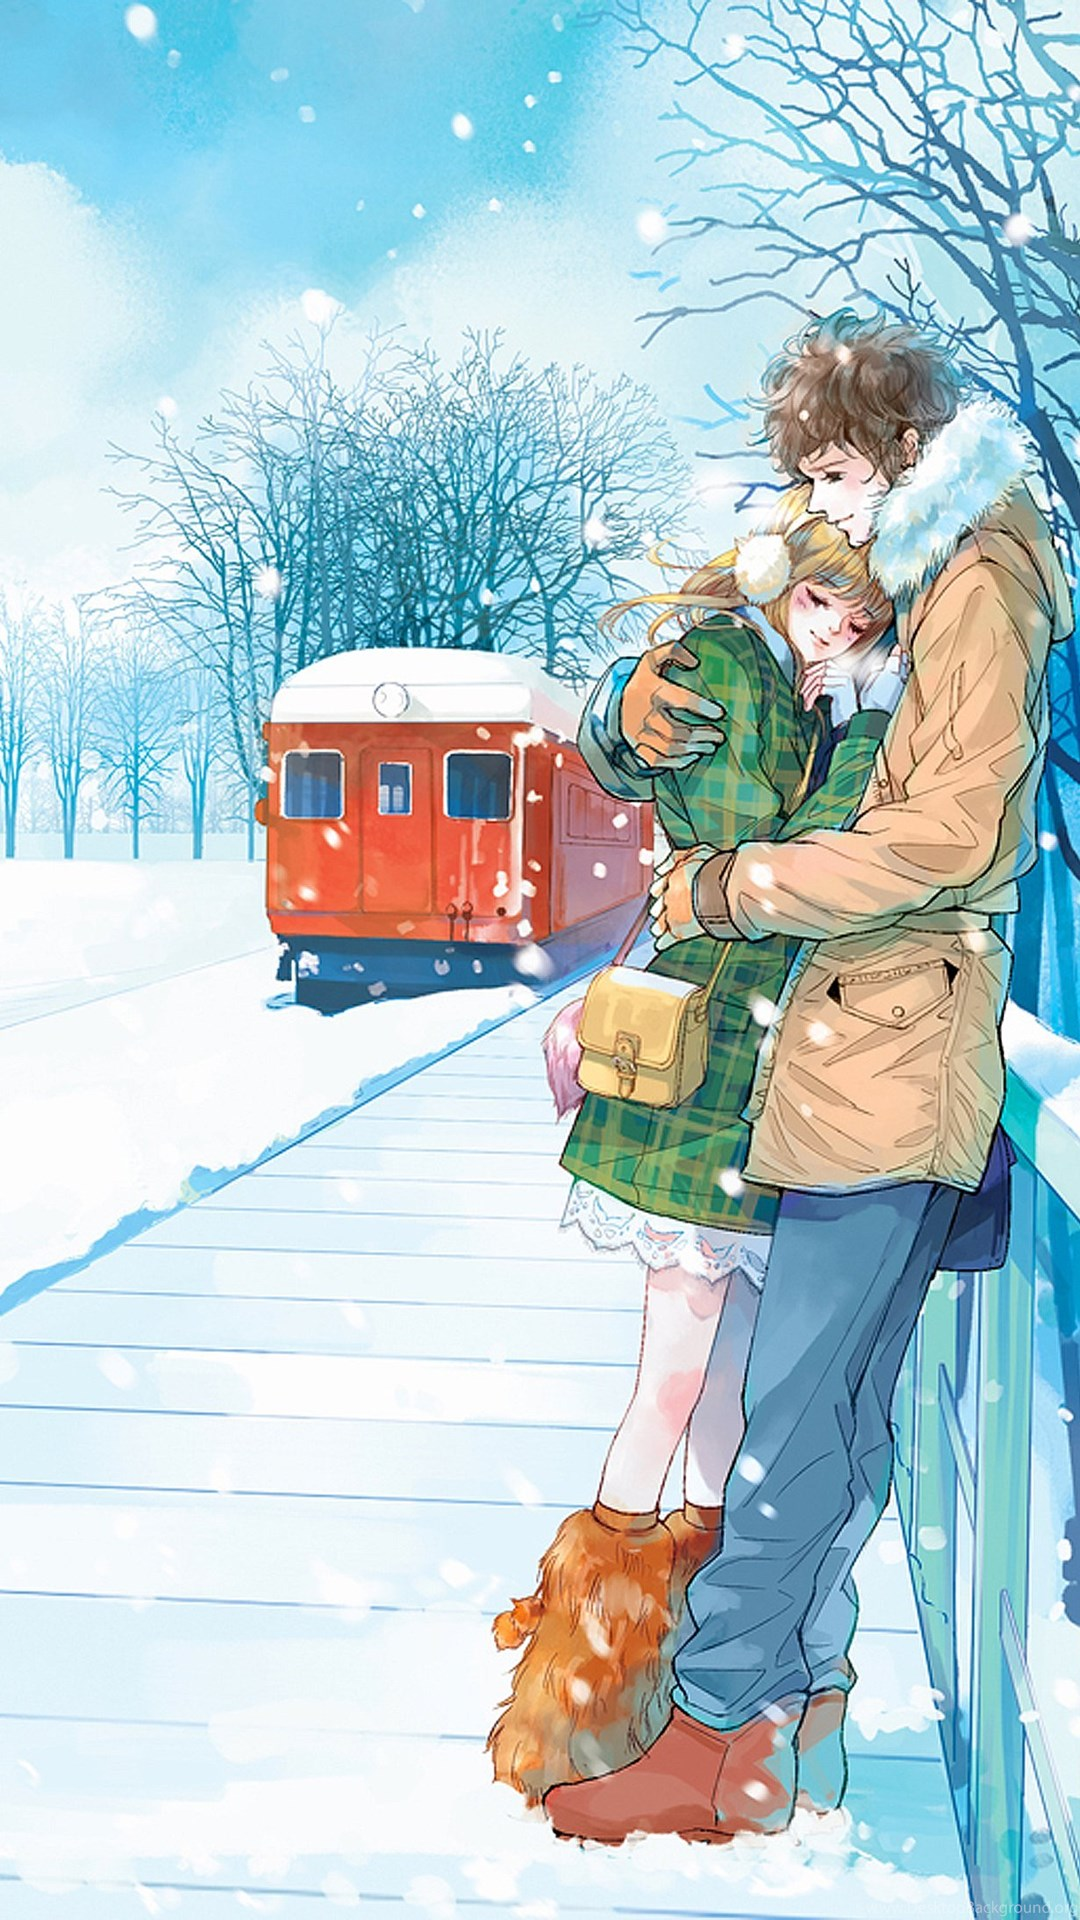 Download Wallpaper Couple Android Phone - 489020_red-train-anime-couple-snow-romantic-love-tree-wallpapers_1440x2189_h  Graphic_589319 .jpg